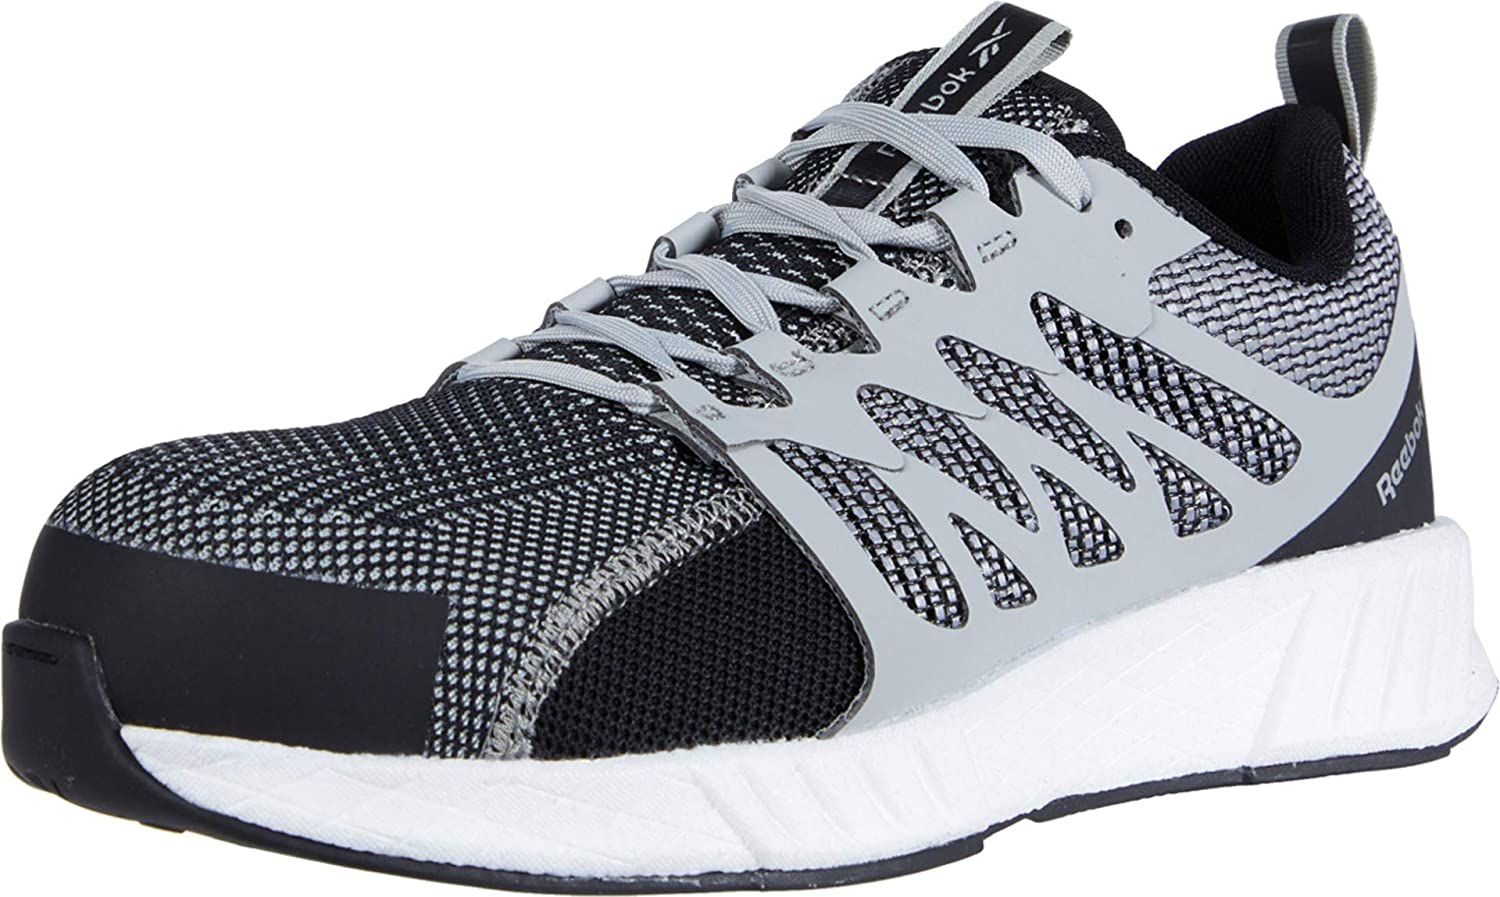 Reebok Men's Fusion Flexweave Safety Toe Work Athletic Max 58% OFF Shoe Year-end annual account